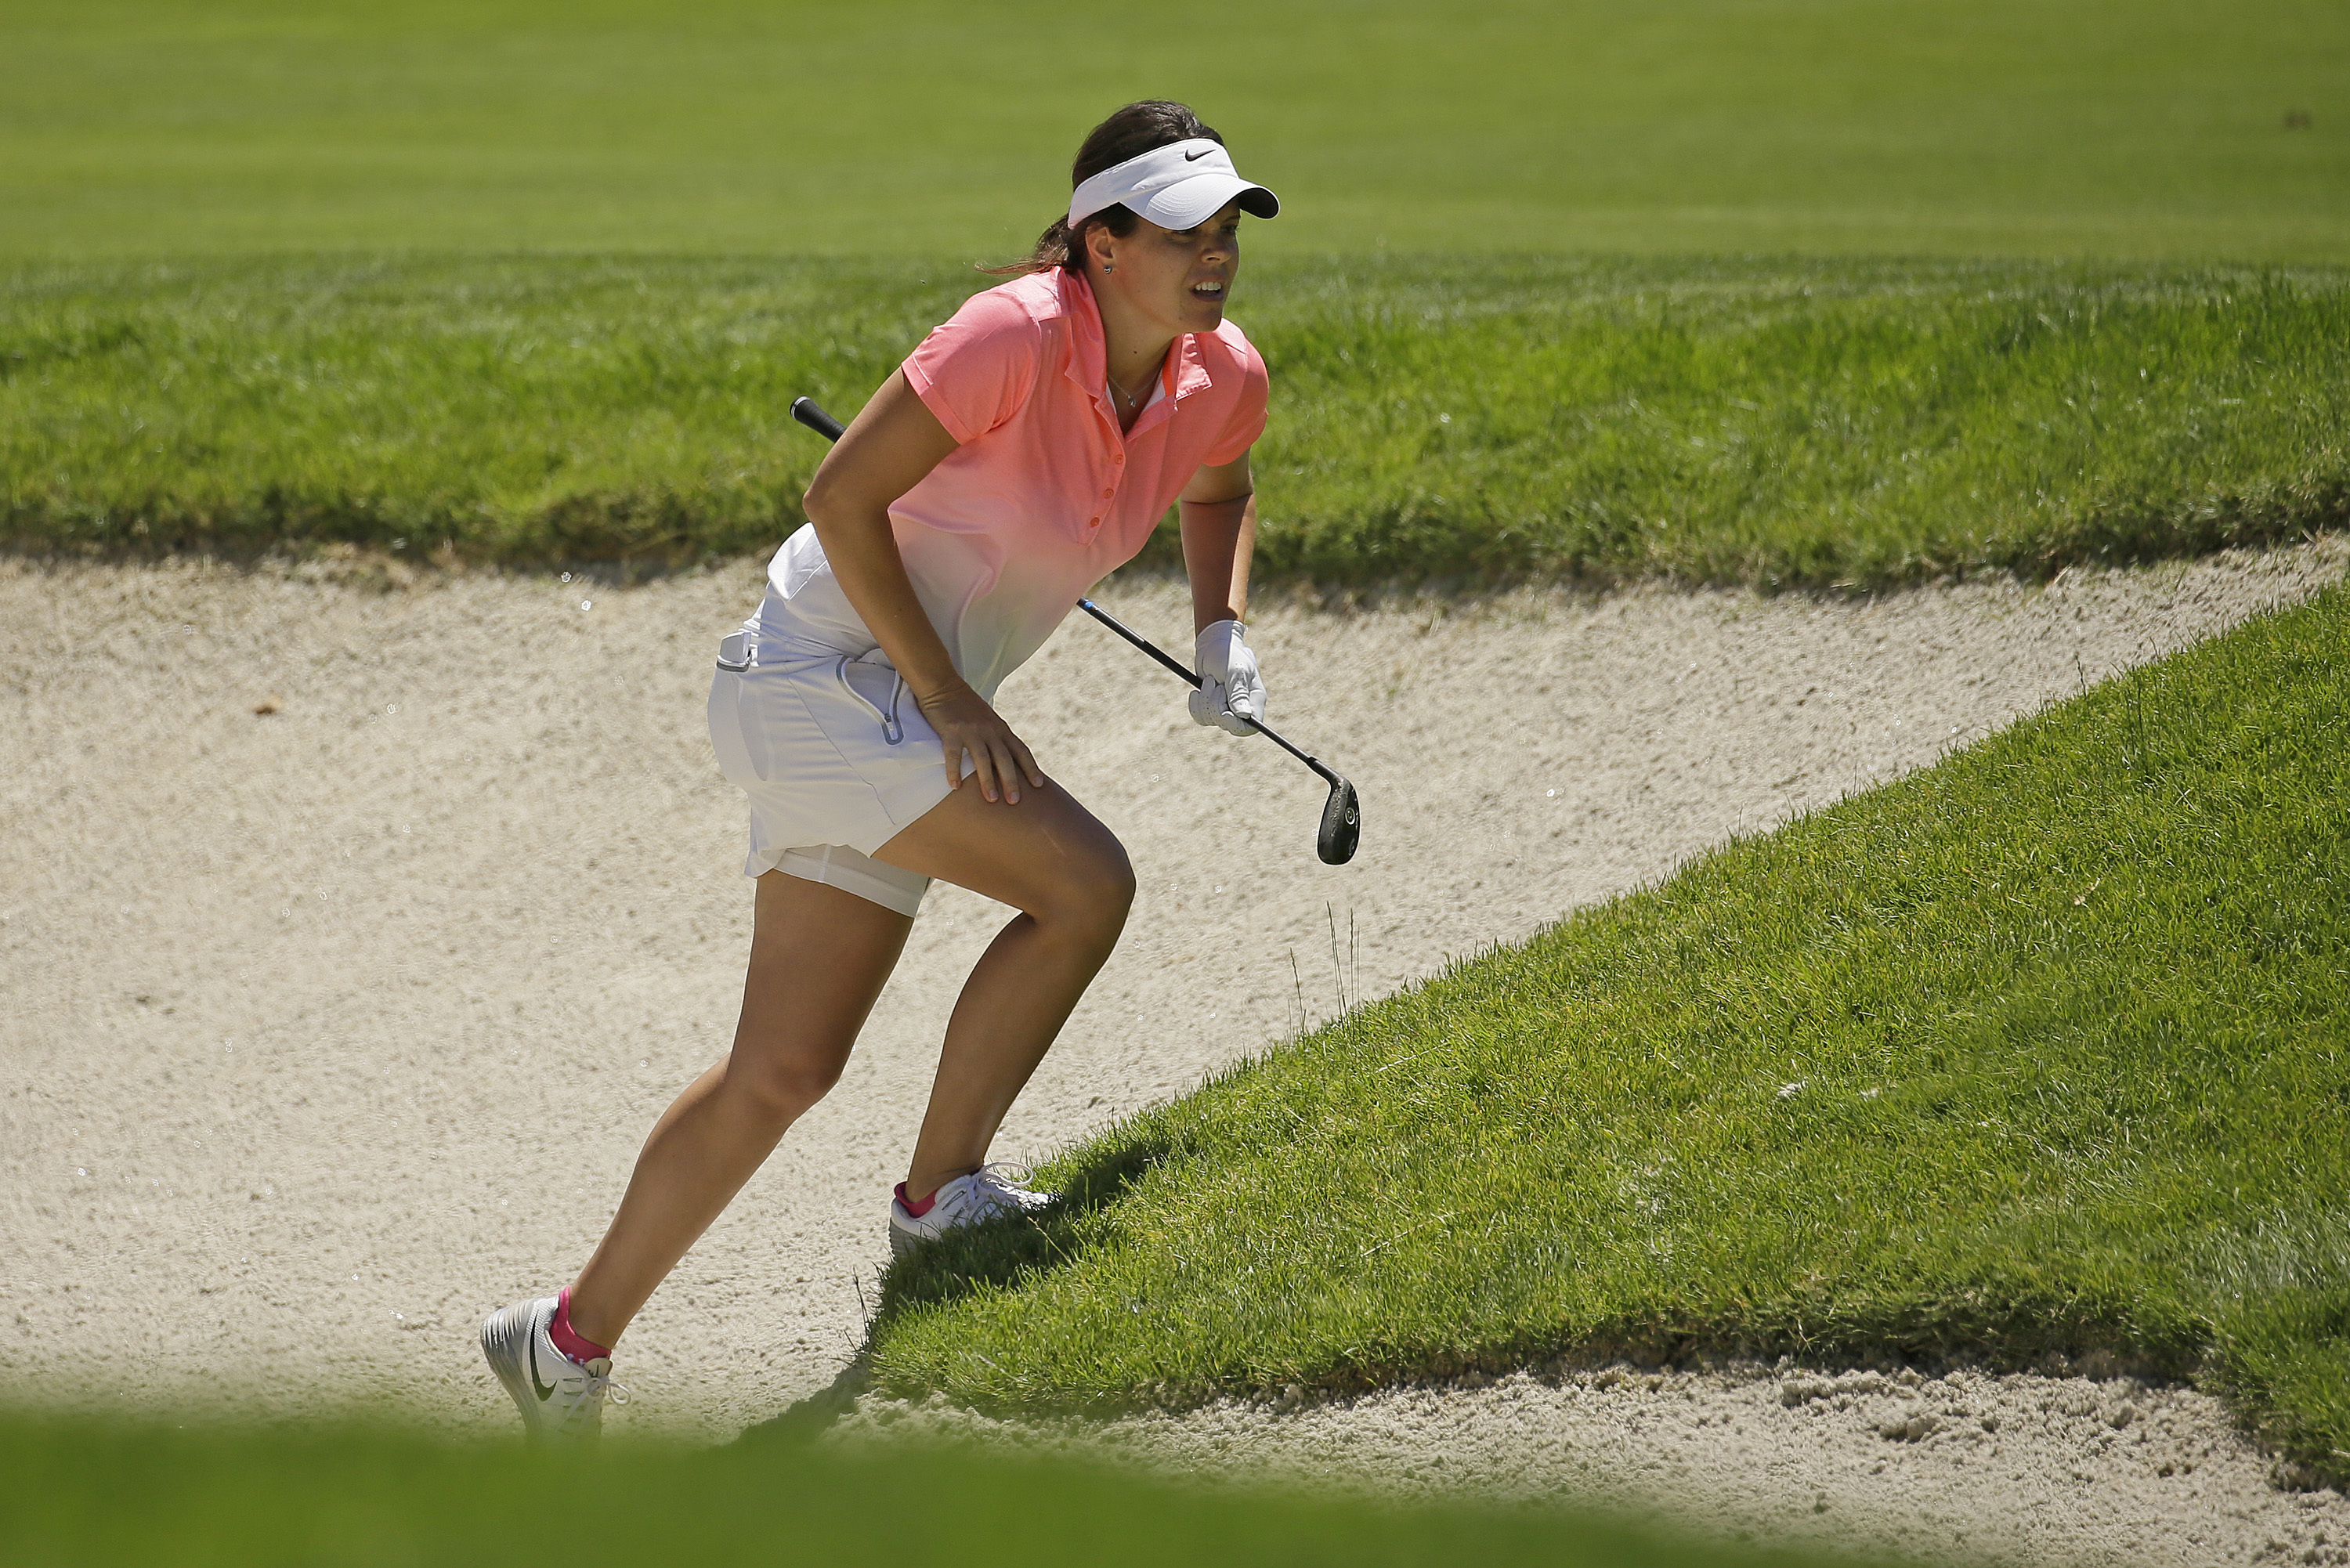 In this Thursday, July 7, 2016, Miriam Nagl, of Brazil, follows her shot out of a bunker on the 10th fairway during the first round of the U.S. Women's Open golf tournament at CordeValle in San Martin, Calif. Many foreigners are taking advantage of Brazil